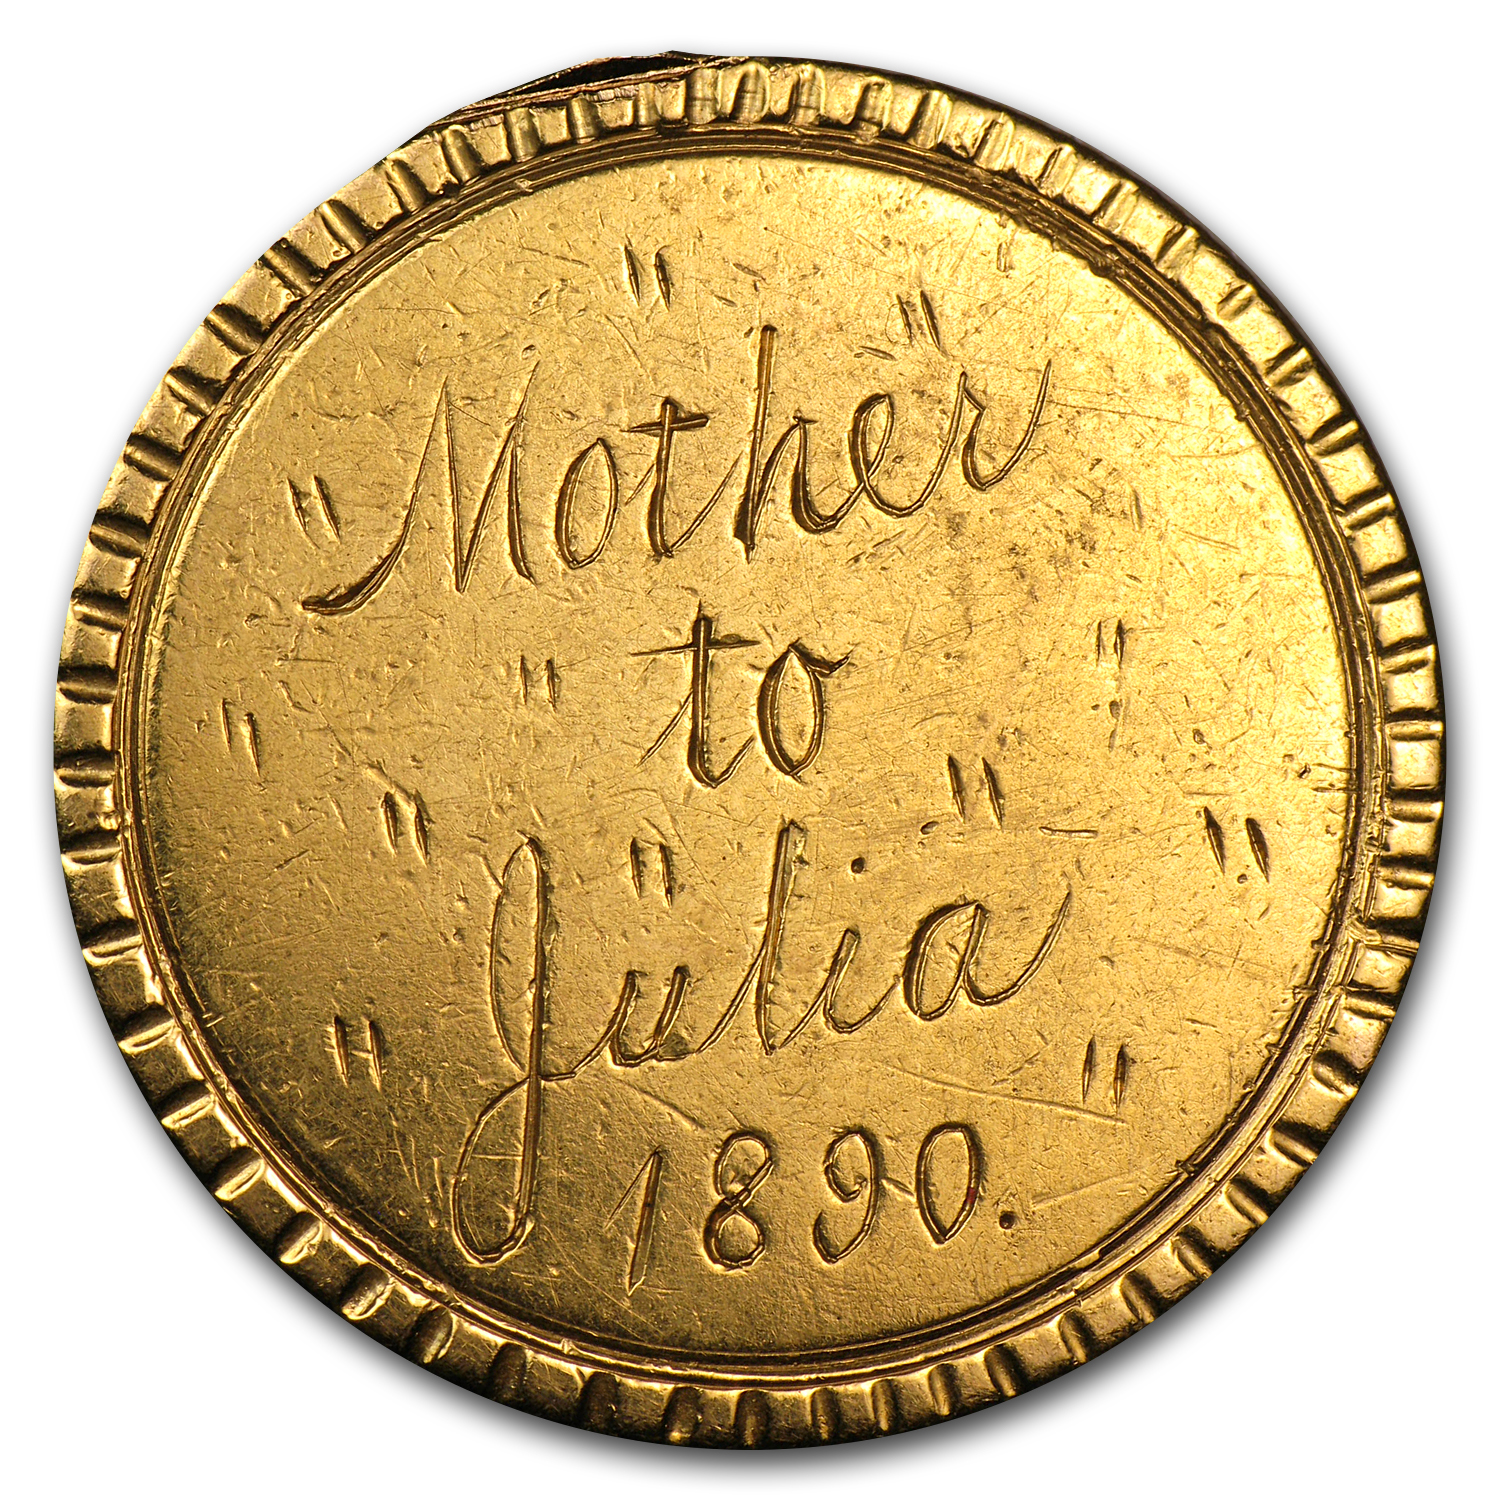 $10 Liberty Gold Eagle - No Date Love Token - Mother to Julia